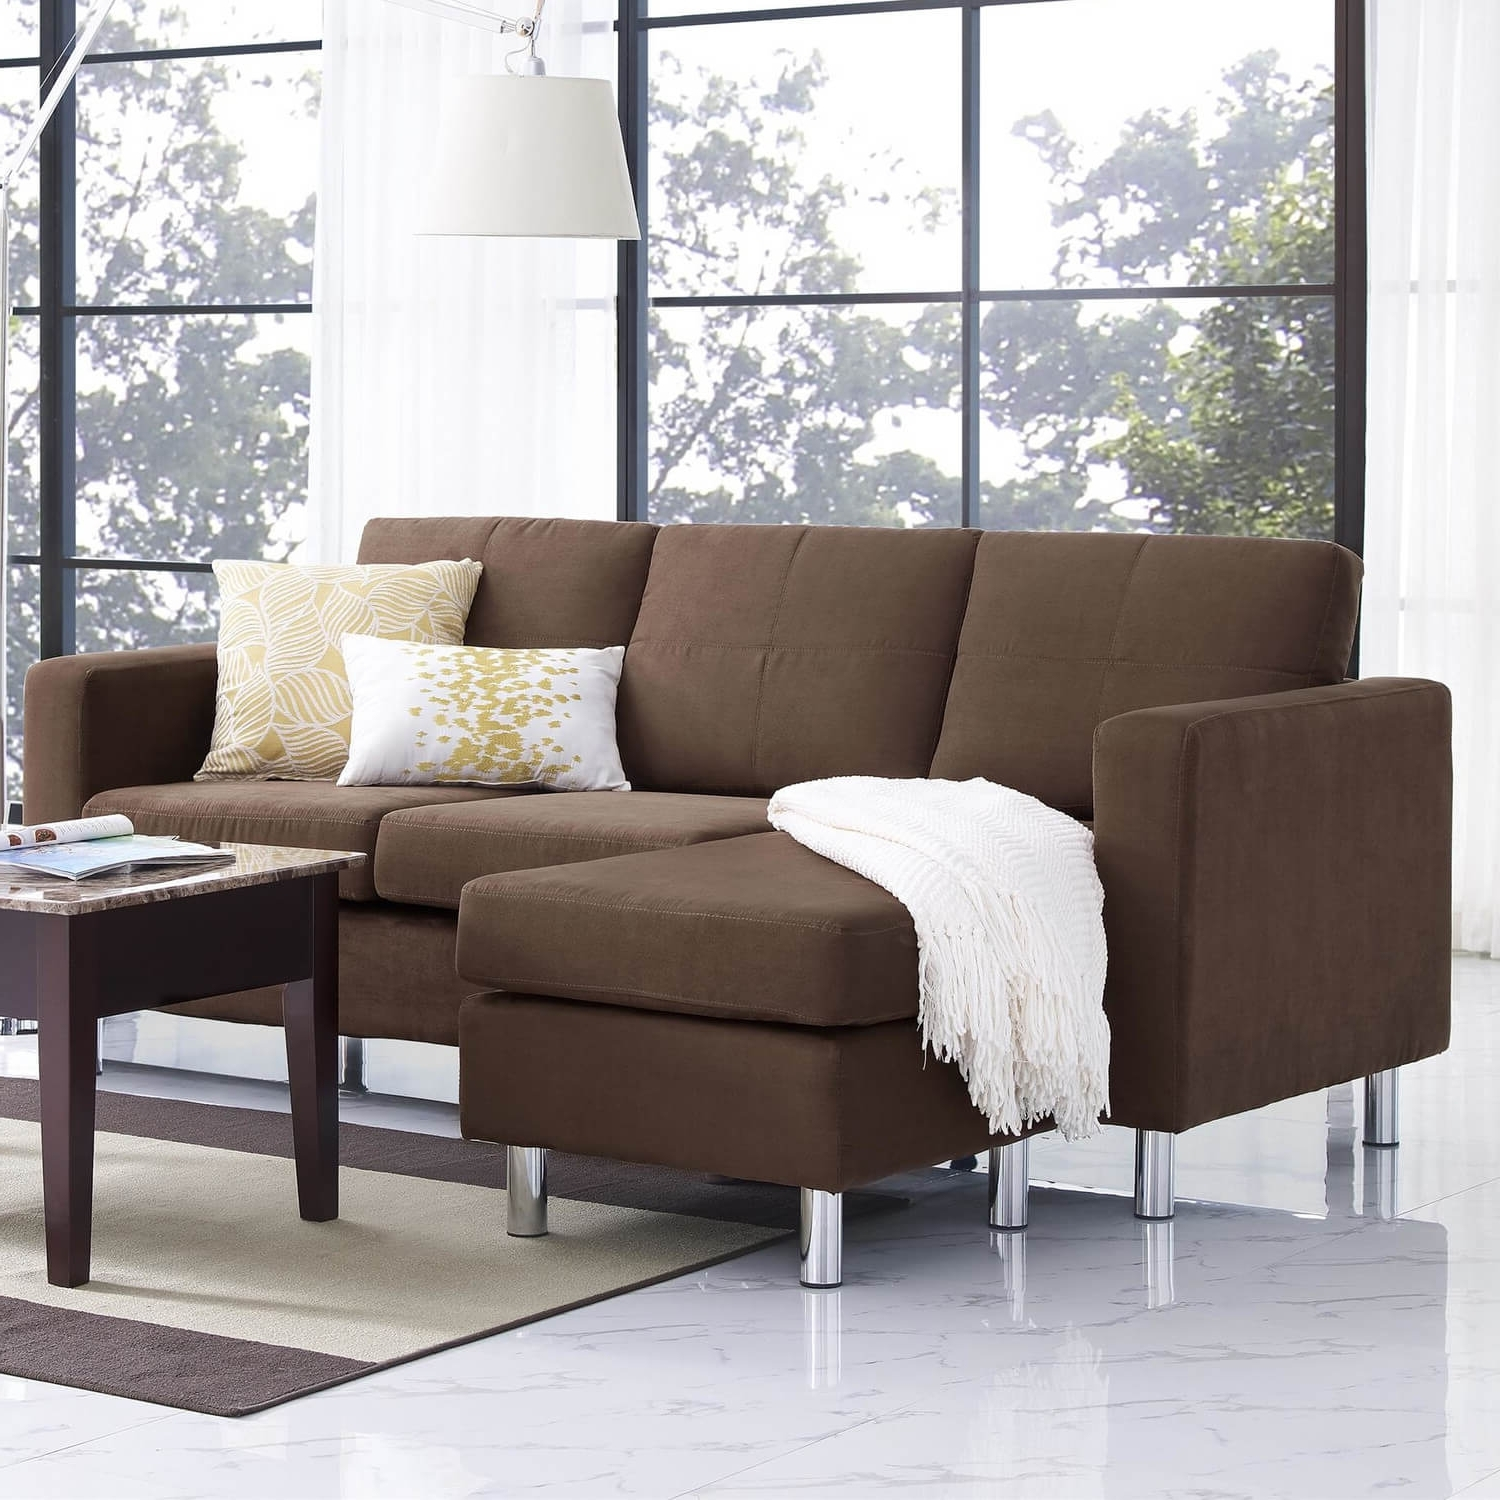 40 Cheap Sectional Sofas Under $500 For 2018 Regarding Trendy Sectional Sofas Under  (View 4 of 20)